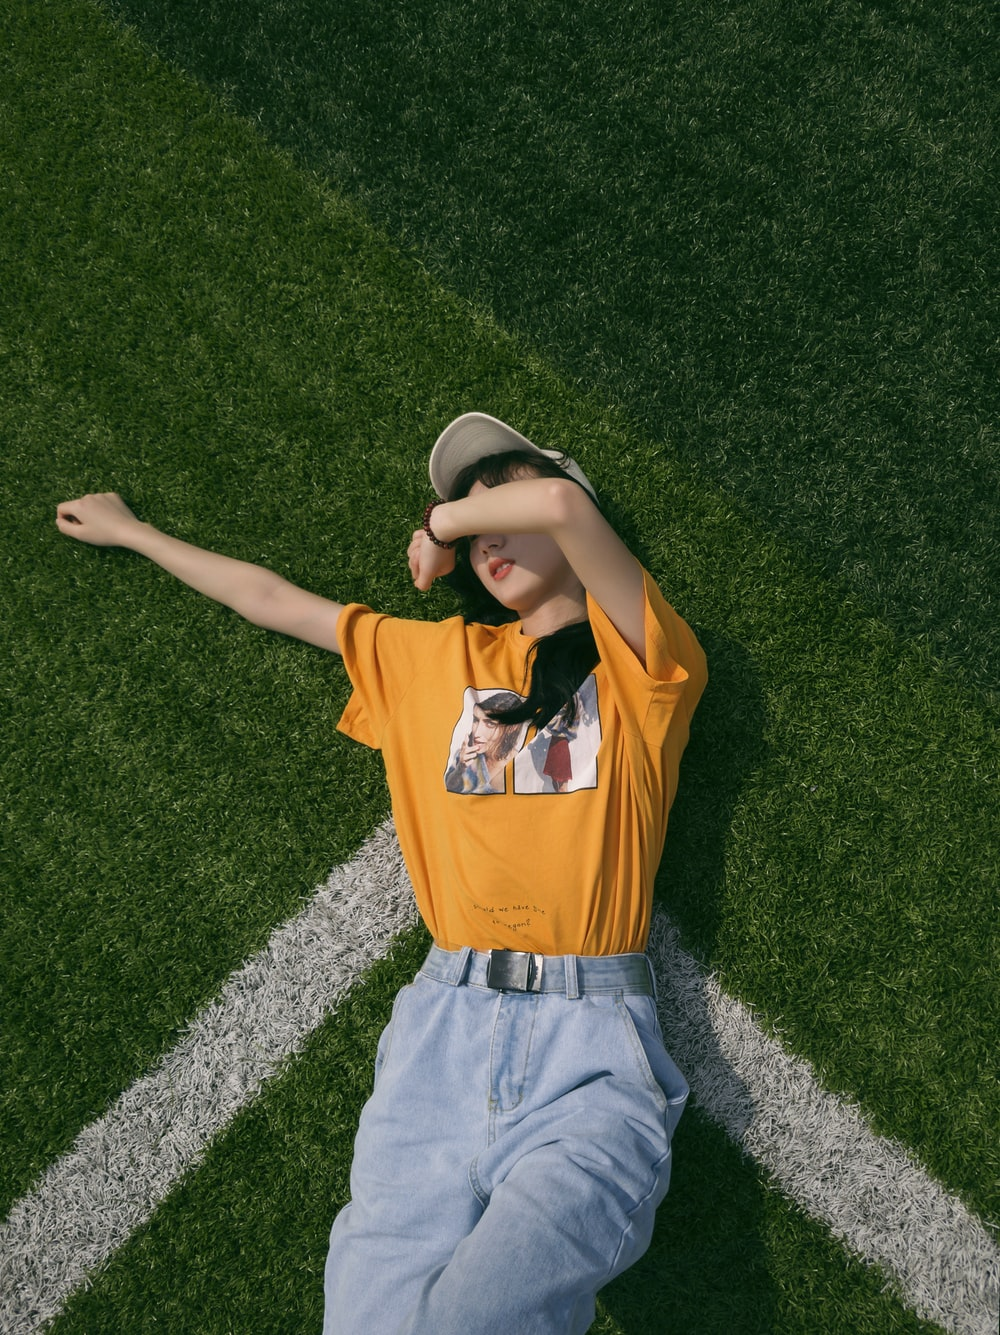 boy in orange and black polo shirt lying on green grass field during daytime